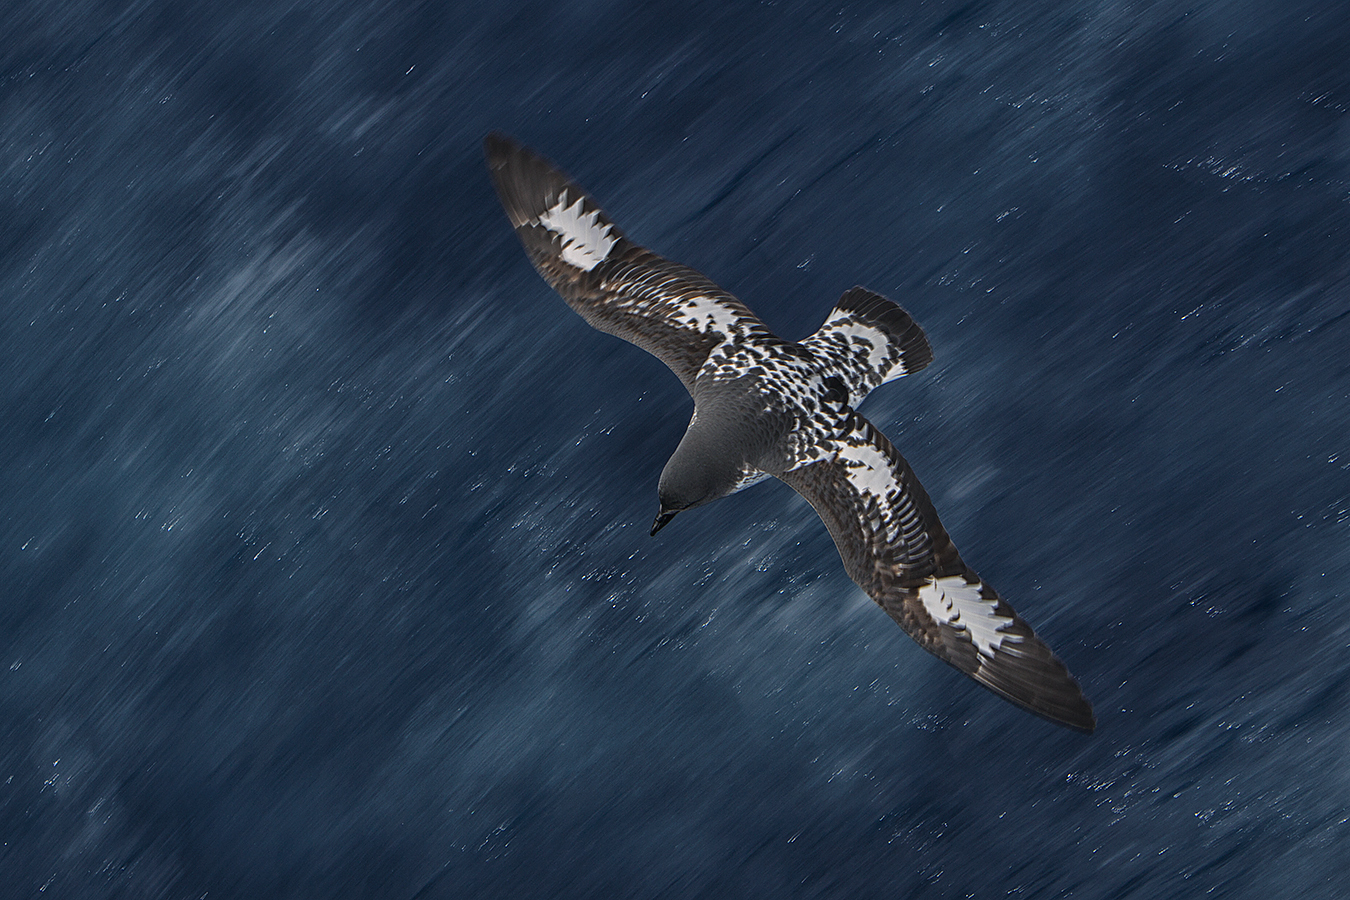 blurs_paul-mckenzie-capepetrel-southernocean